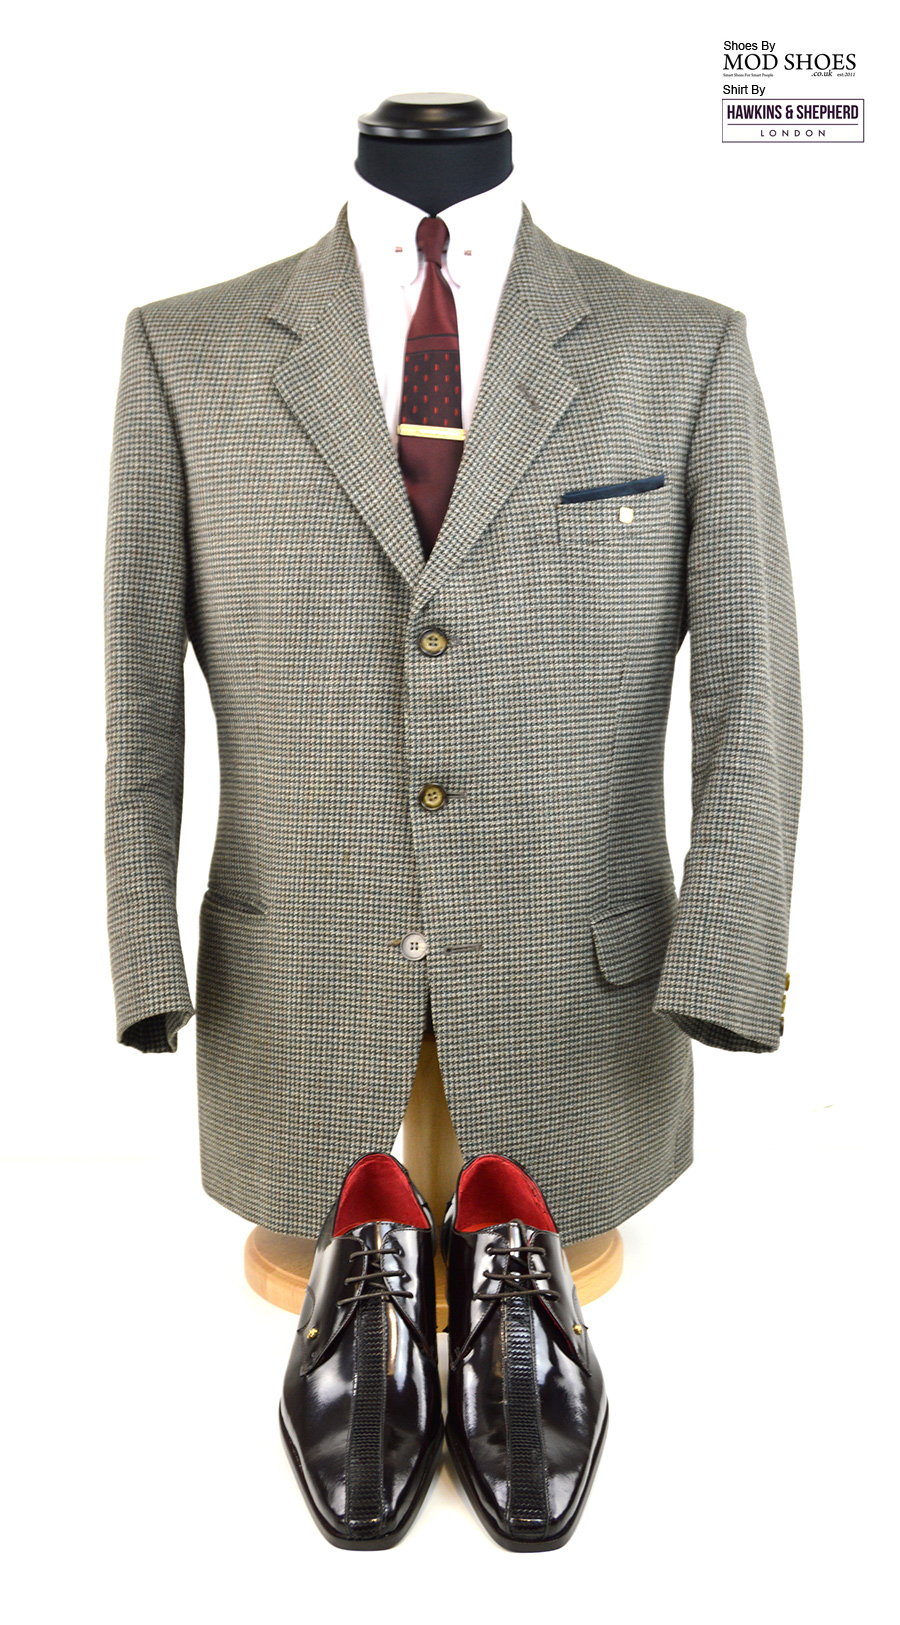 modshoes-jeffery-west-shoes-with-pin-collar-shirt-from-Hawkins-and-Sheperds